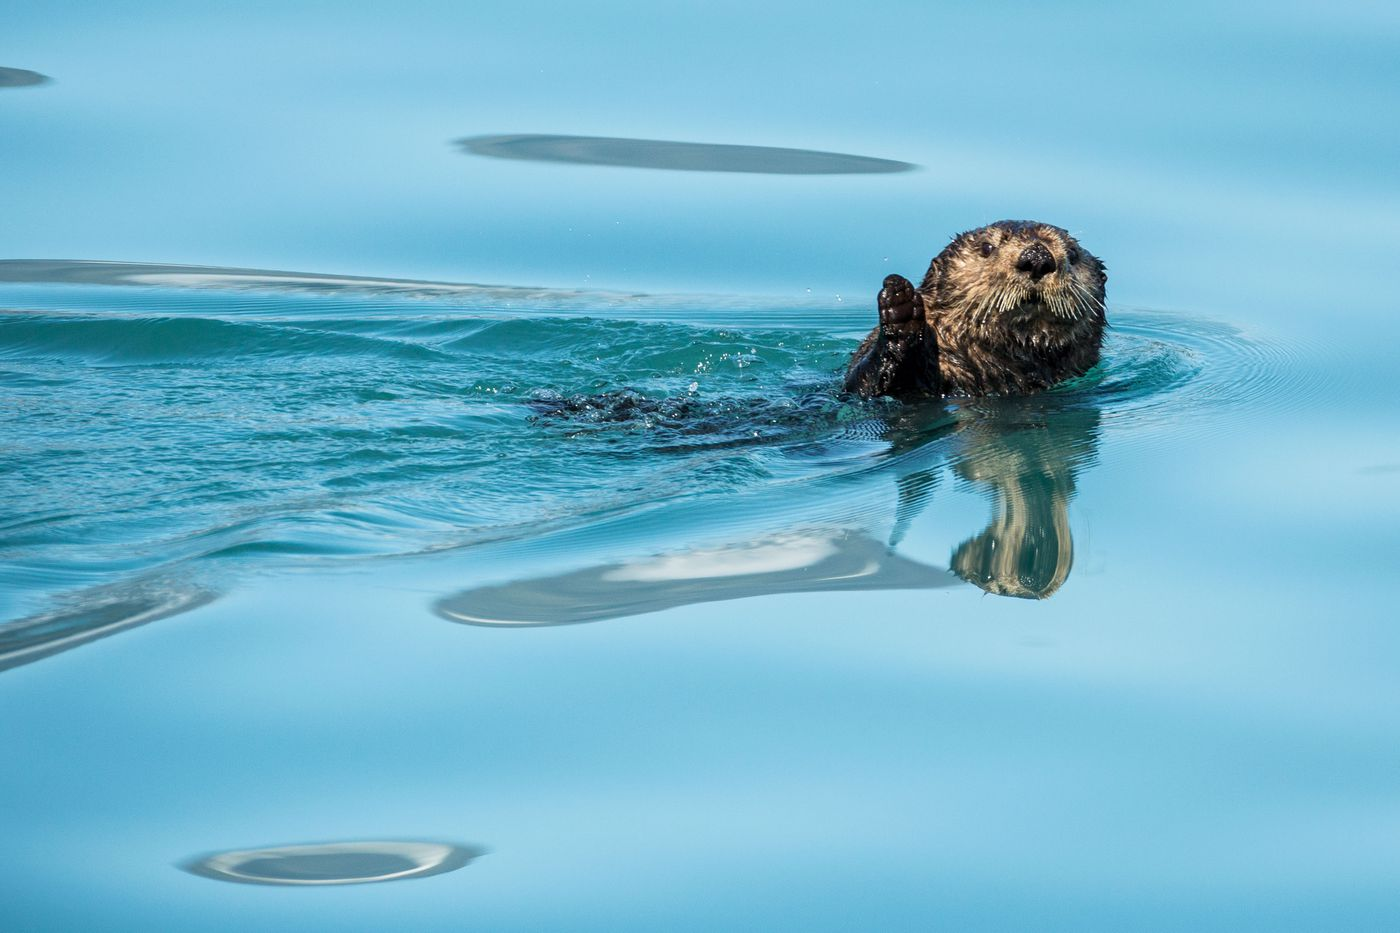 A sea otter watches a passing boat in Aialik bay in Kenai Fjords National Park on Aug. 20, 2014. (Loren Holmes / Alaska Dispatch News)